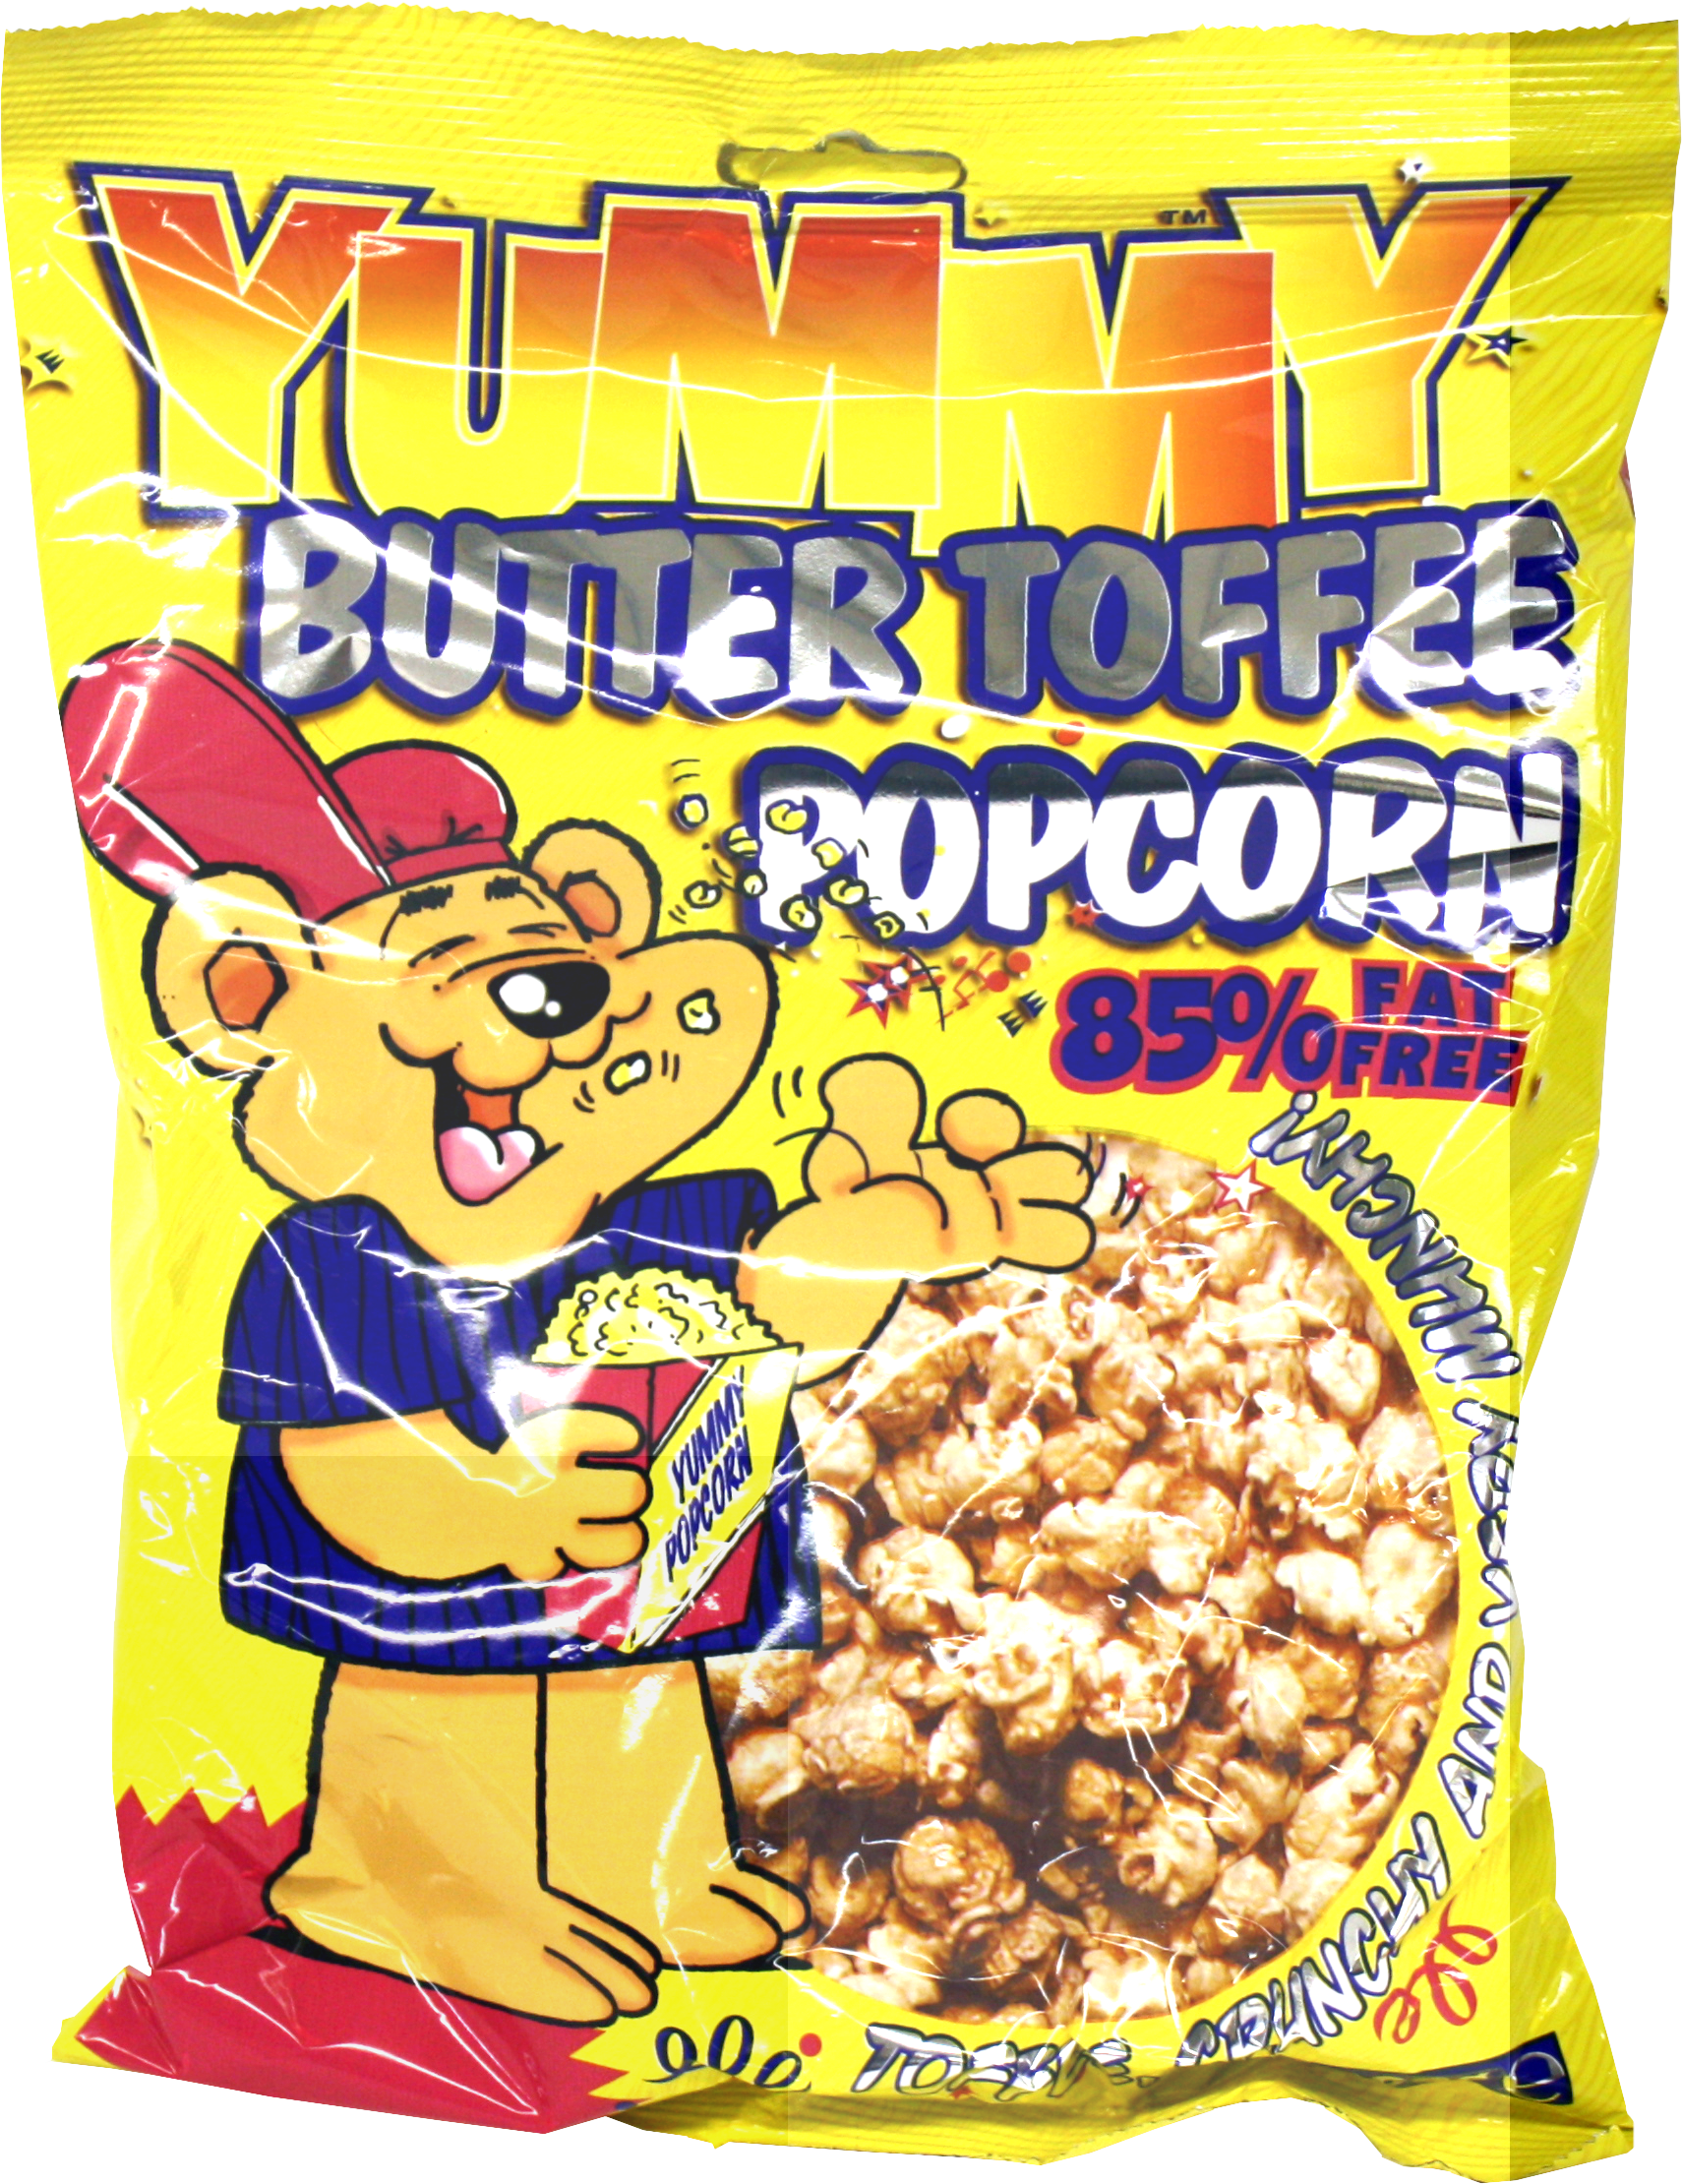 CON 120 Yummy Butter Toffee Popcorn